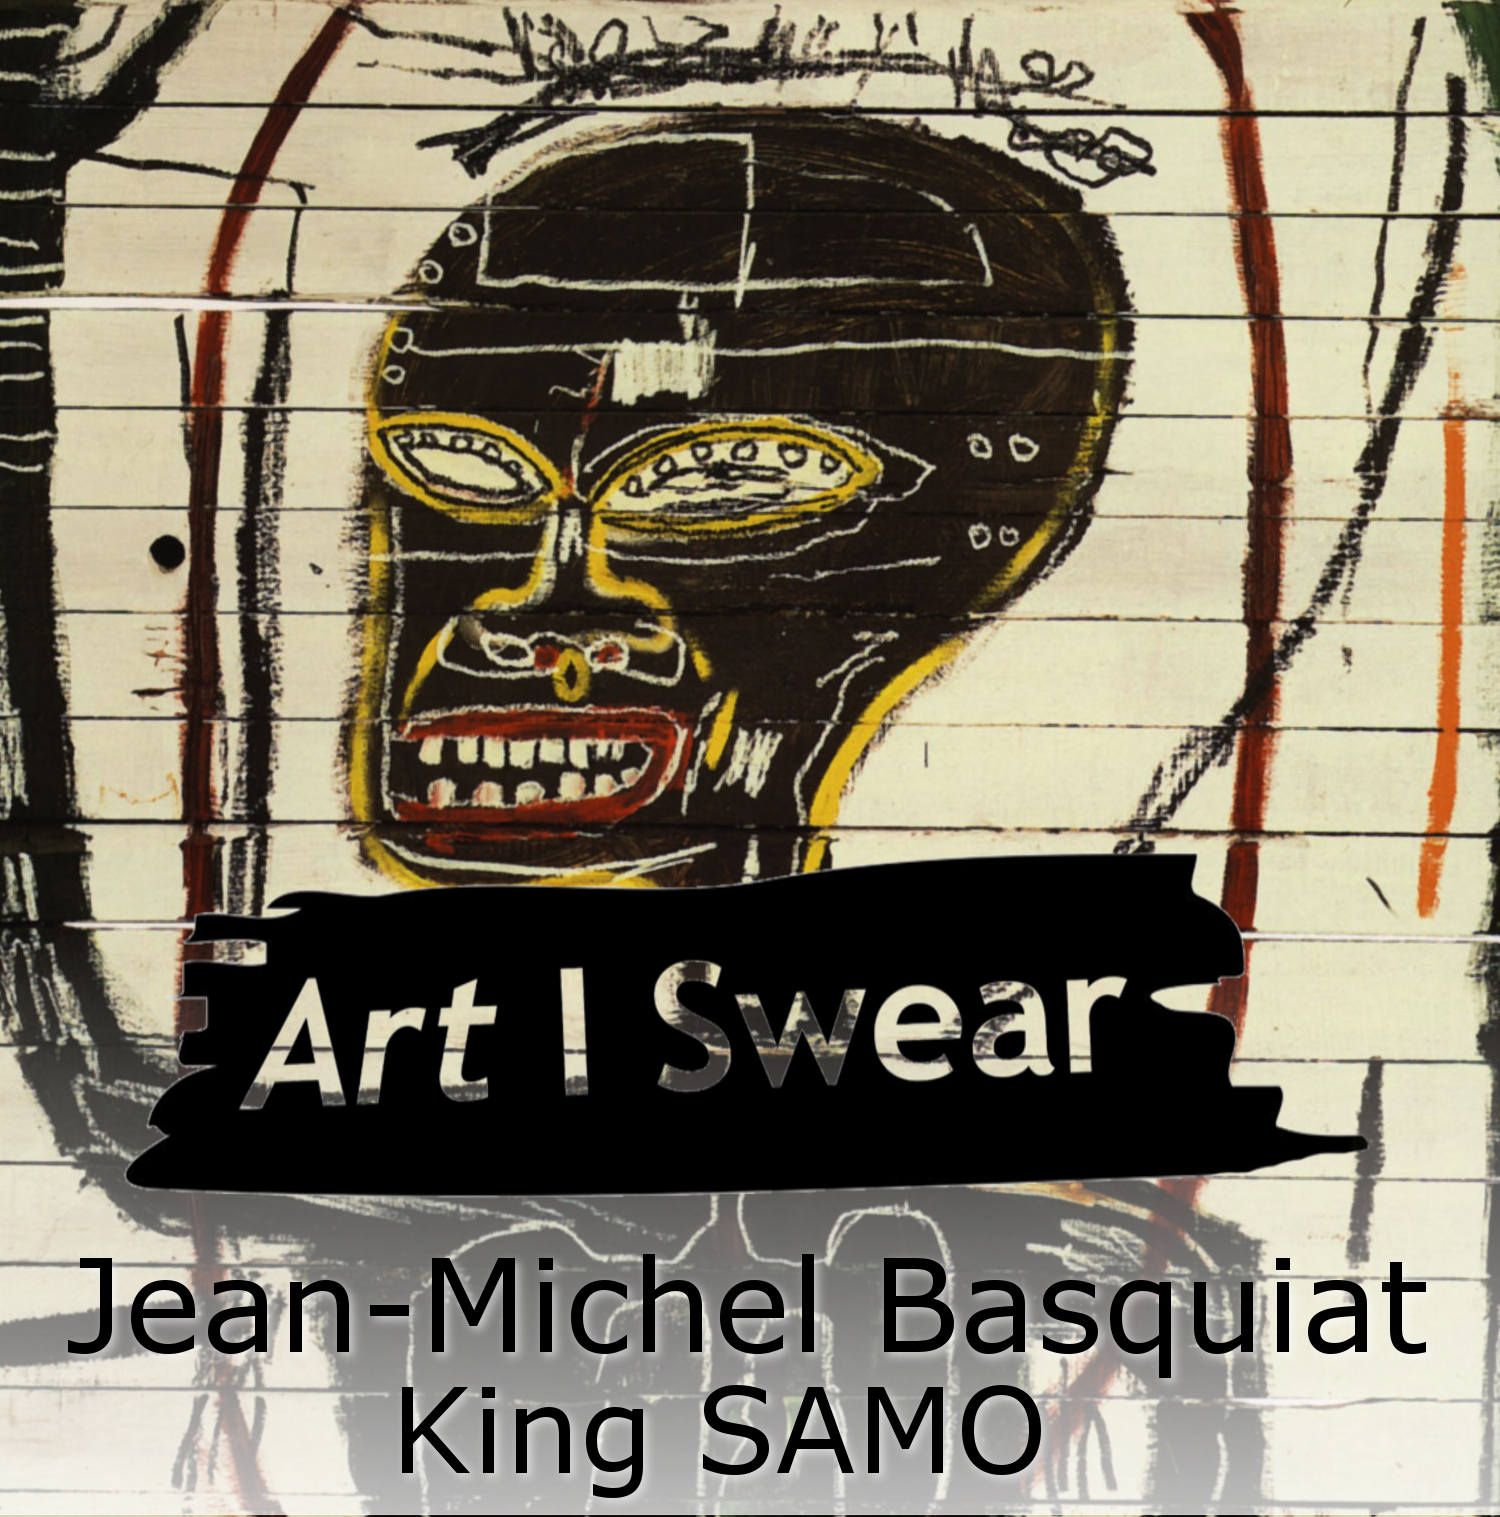 Jean-Michel Basquiat Art I Swear Logo LARGE.png